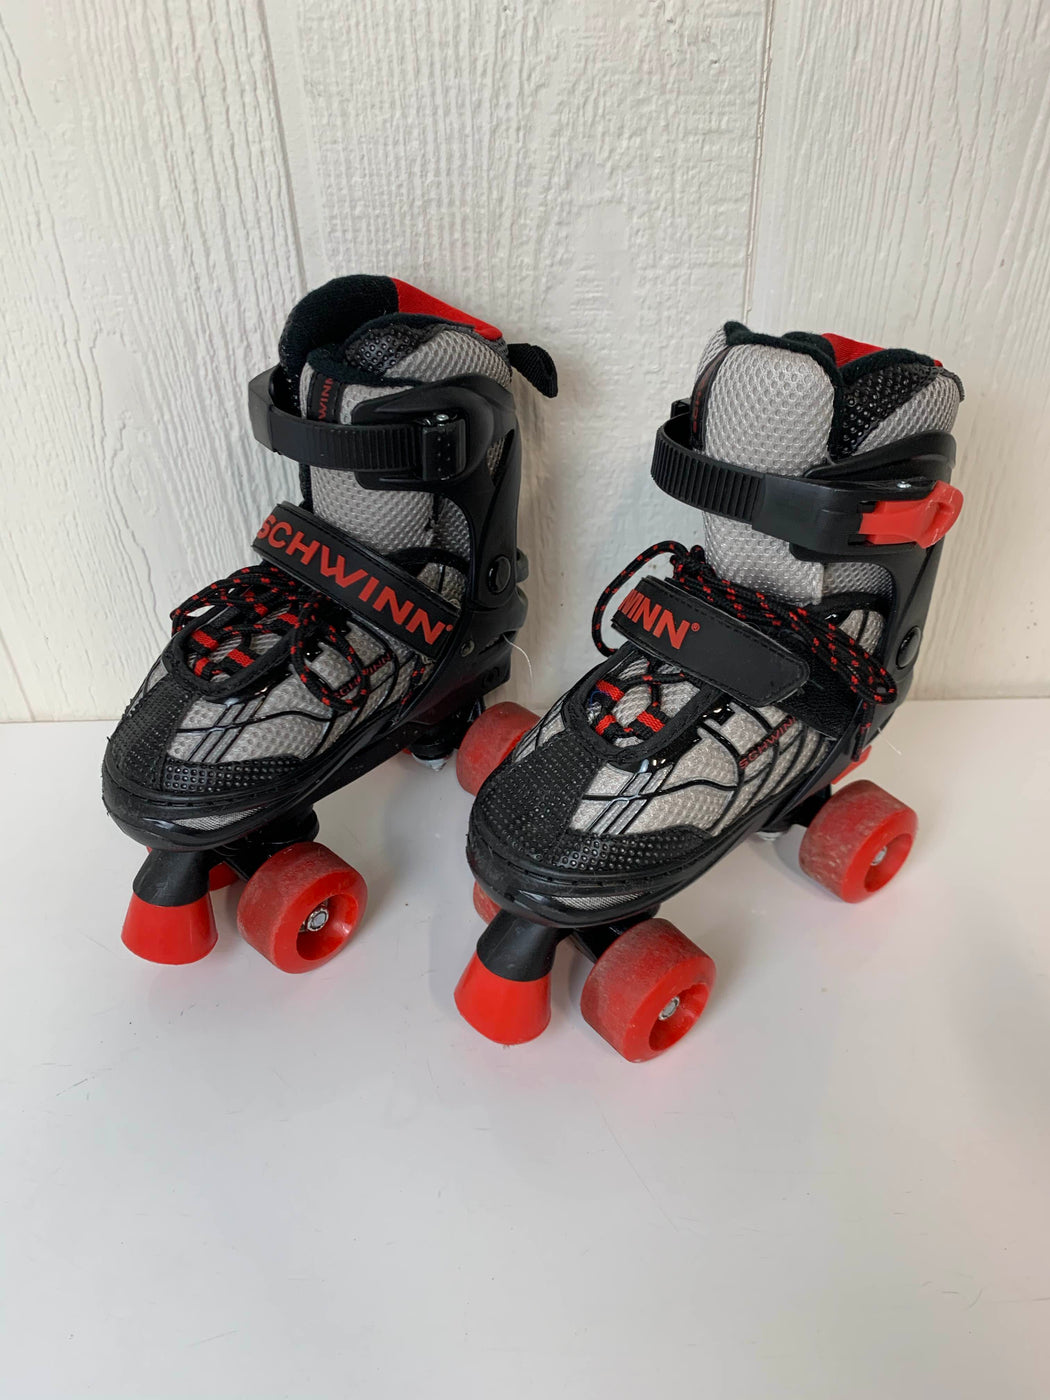 secondhand Schwinn Youth Adjustable Fit Roller Skates